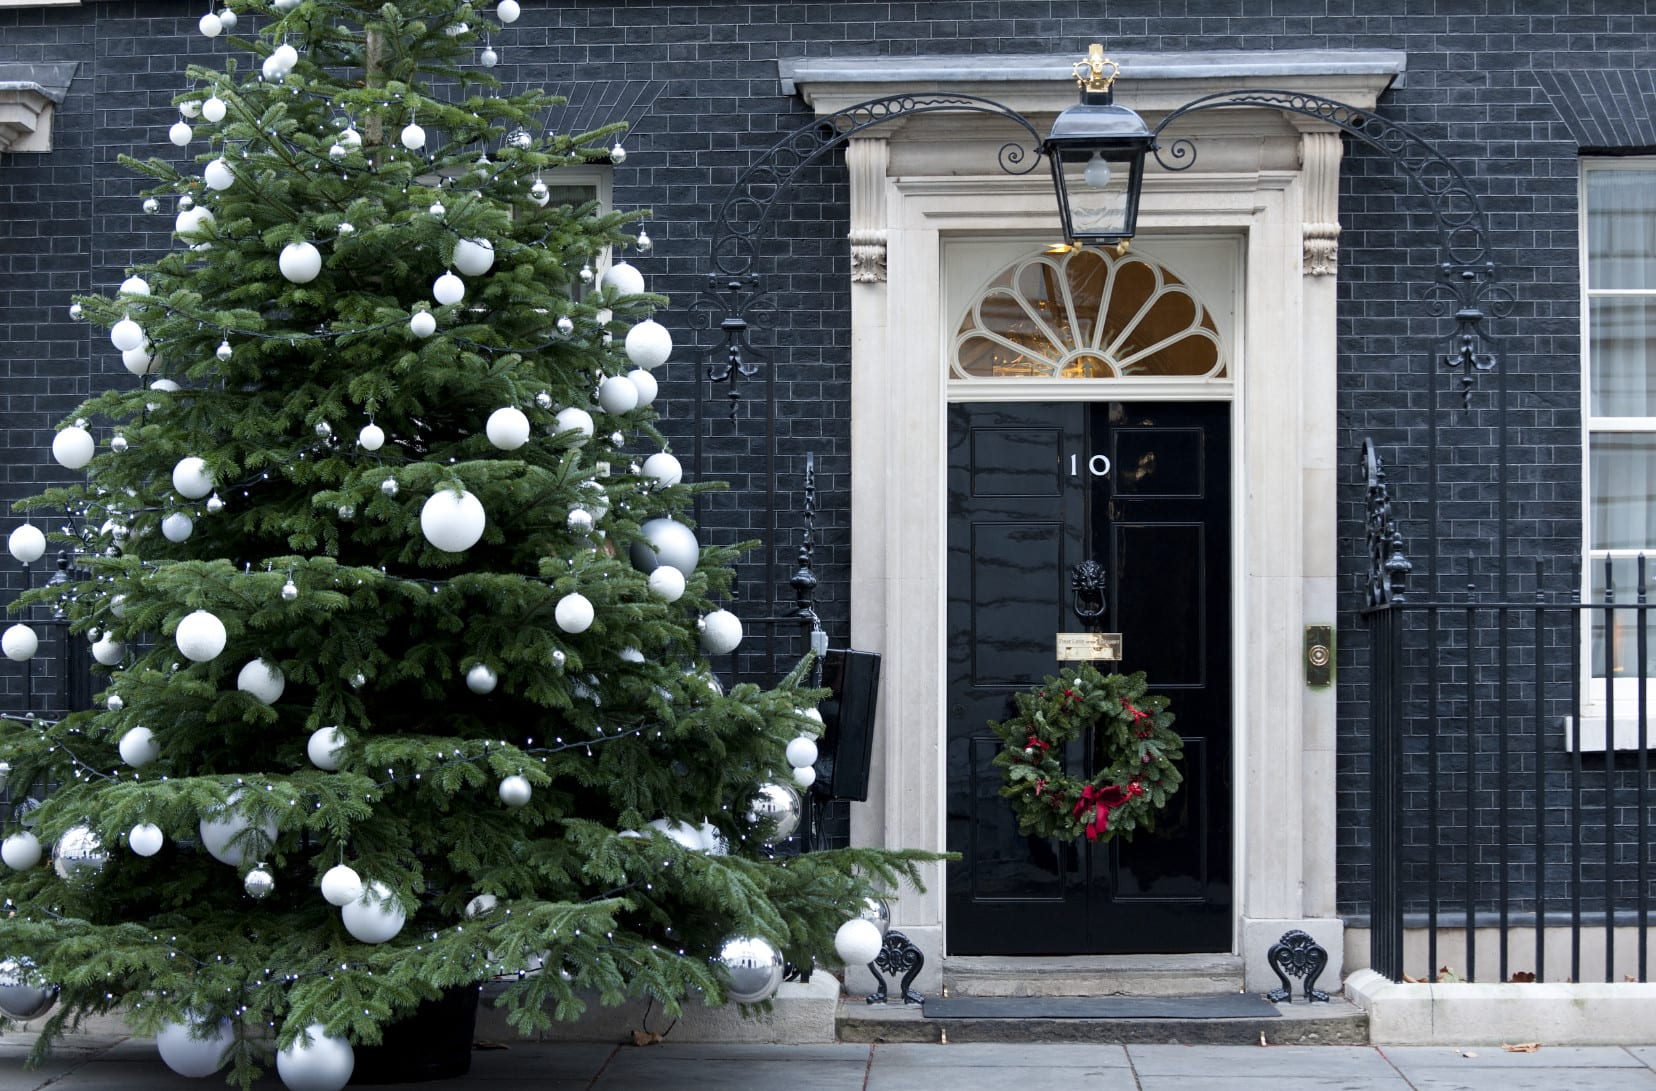 Bett Mit Treppe Number 10 Downing Street At Christmas - Freshouse